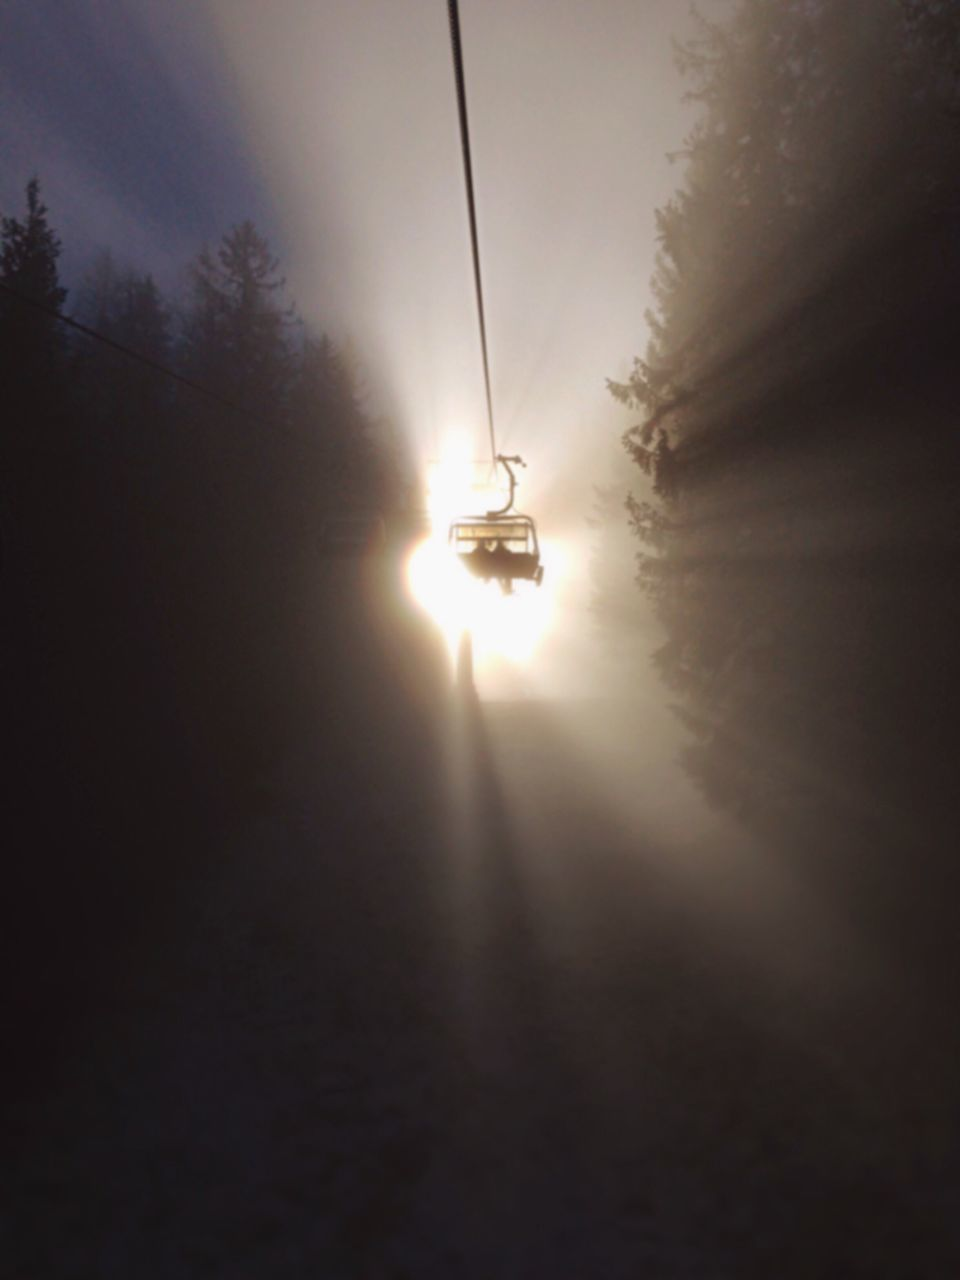 sunset, transportation, silhouette, mode of transport, sun, sky, hanging, nature, tree, fog, overhead cable car, no people, outdoors, nautical vessel, day, ski lift